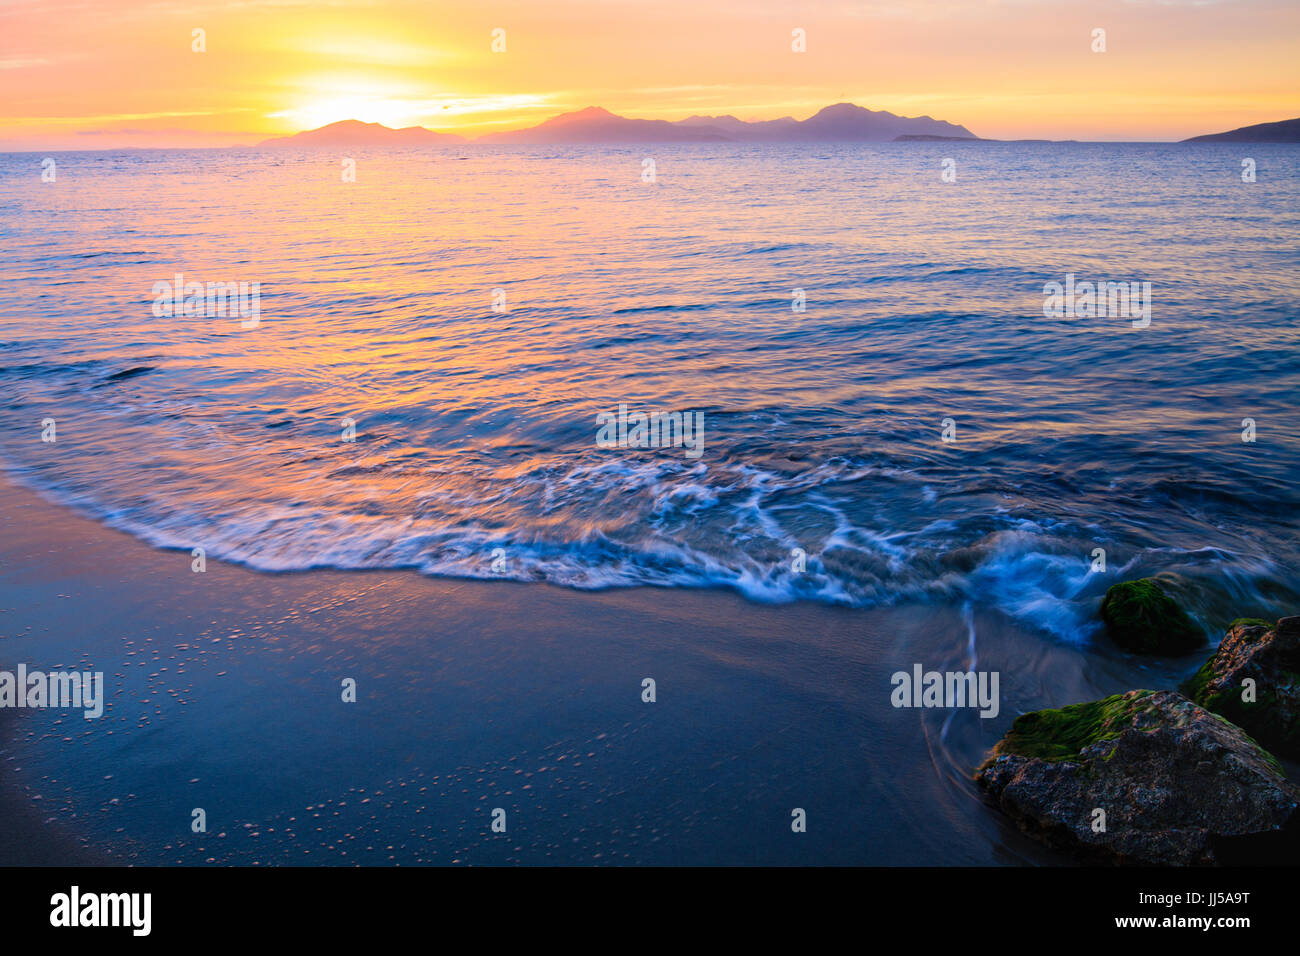 Wonderful sunset behind mountains peak protruding from ocean. Stock Photo